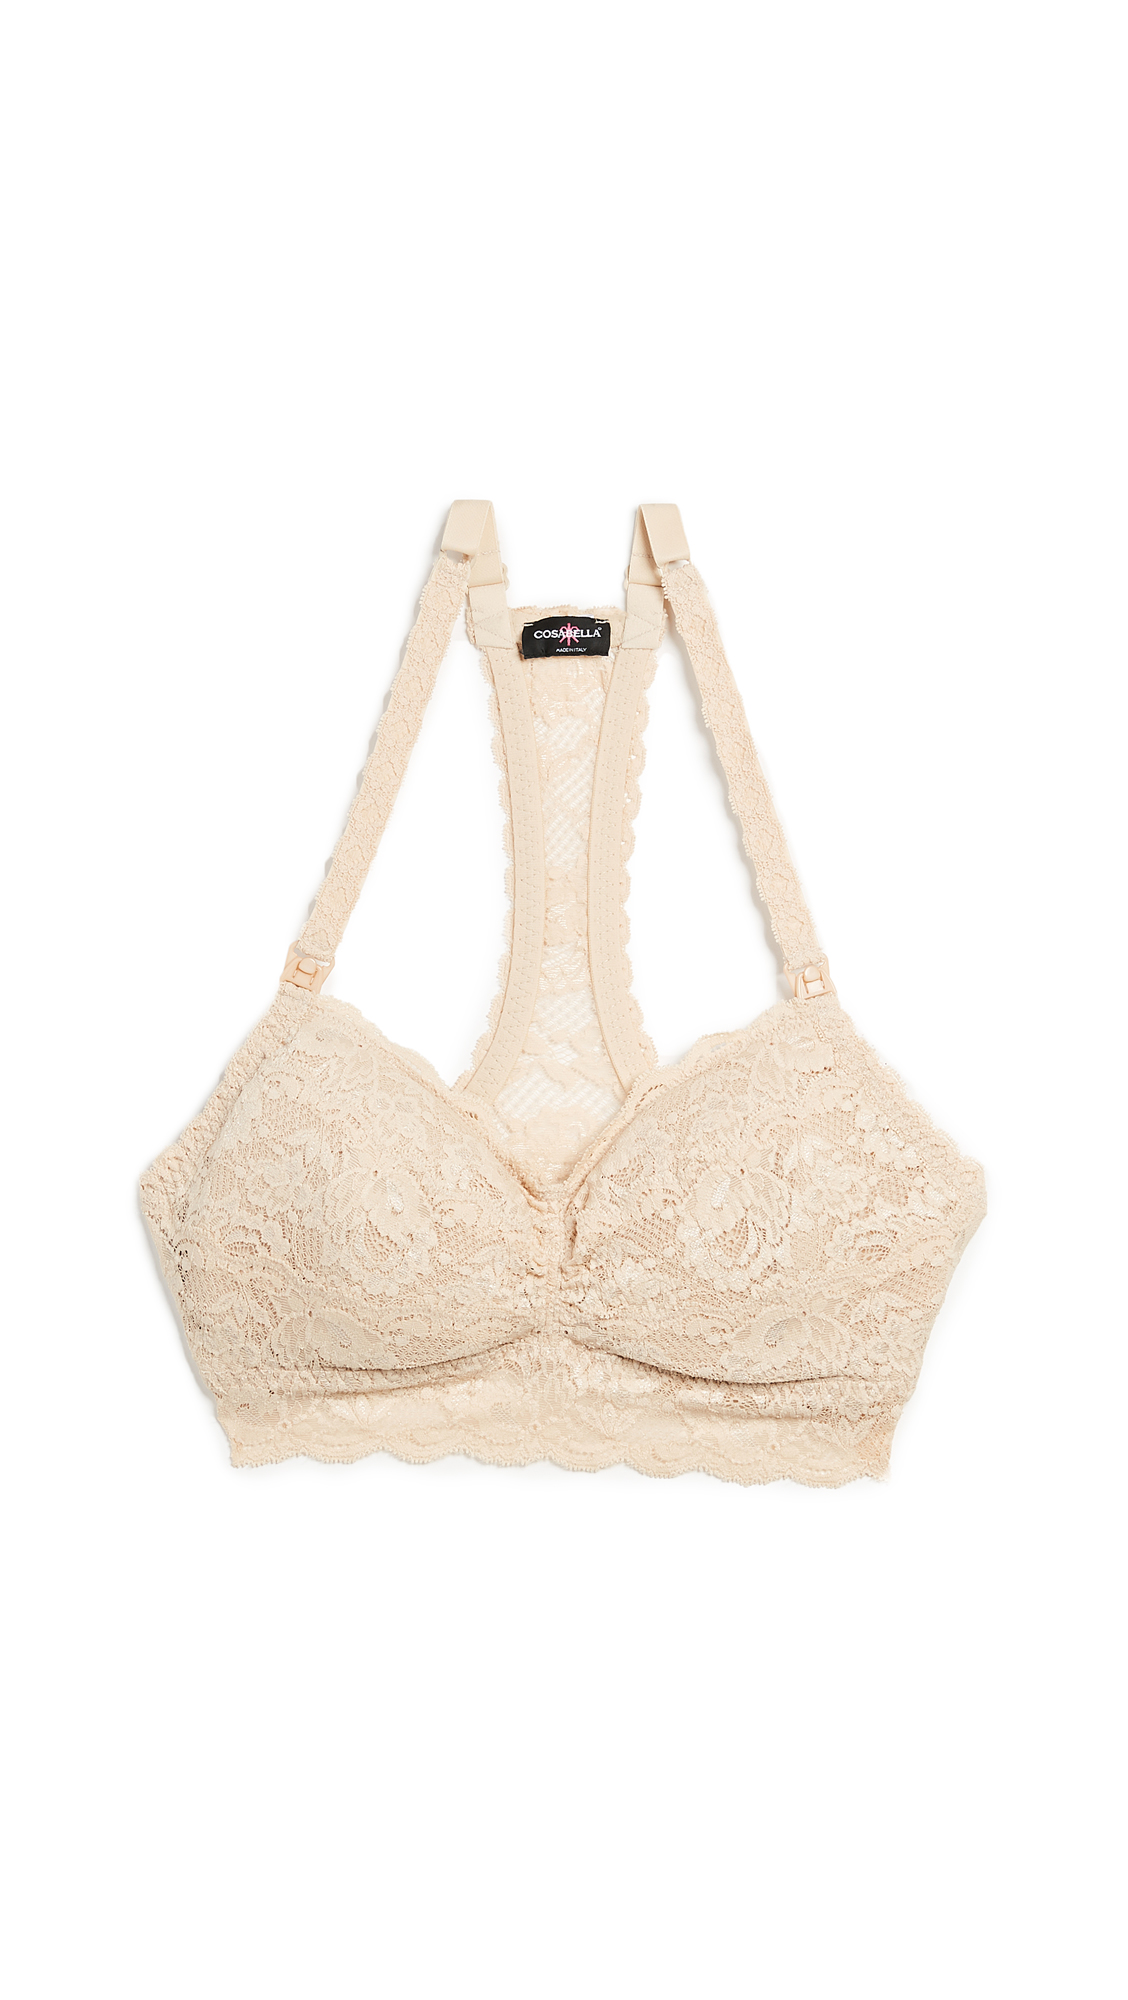 Cosabella Never Say Never Maternity Mommie Racie Bra